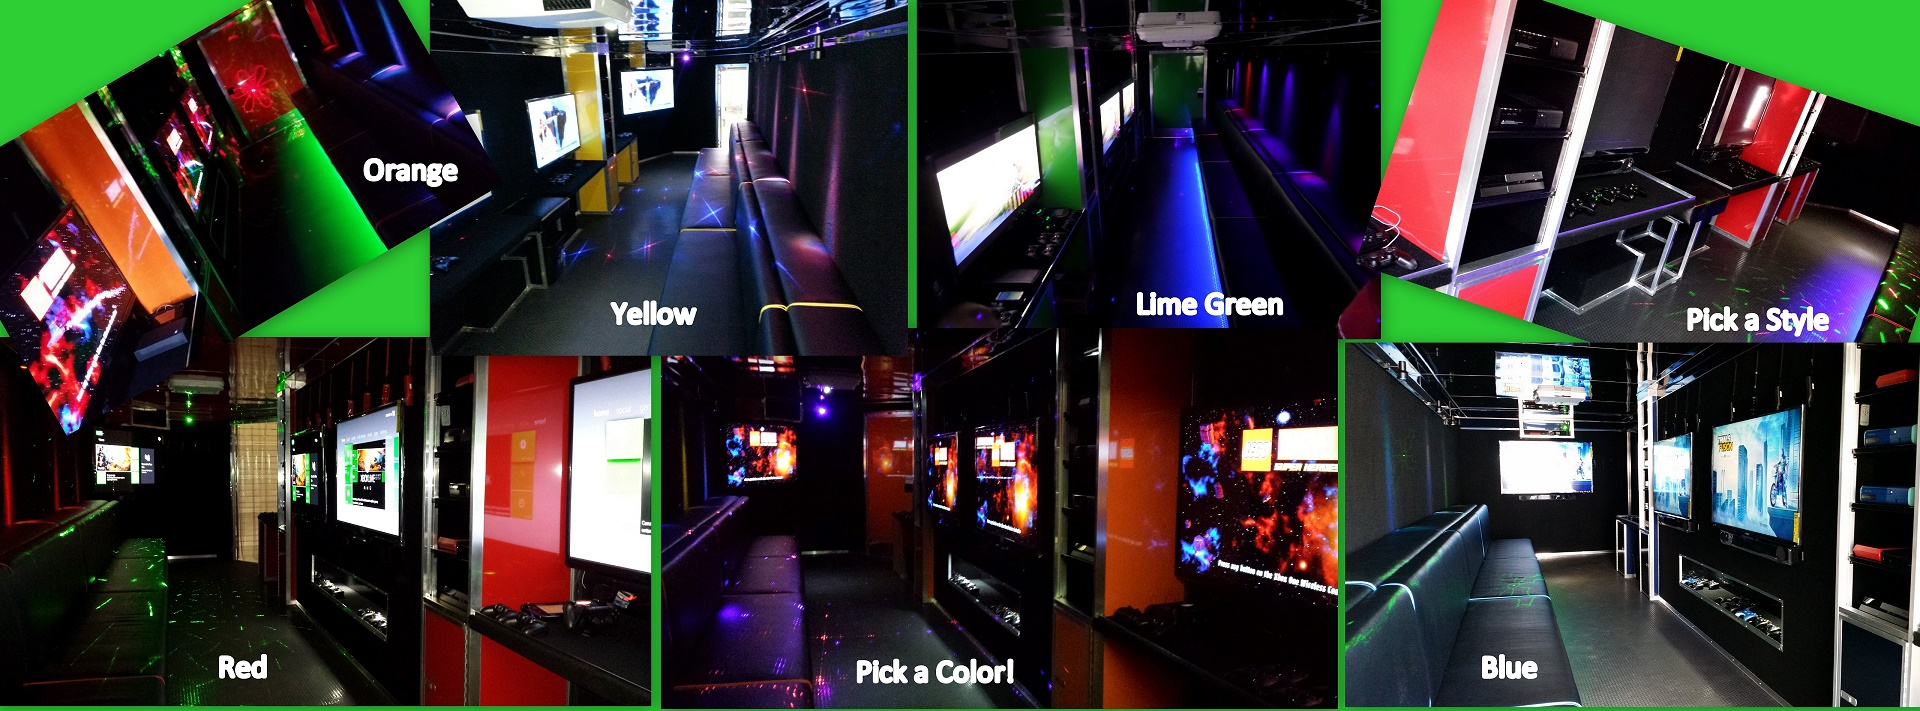 Mobile Game Theater Colors Email